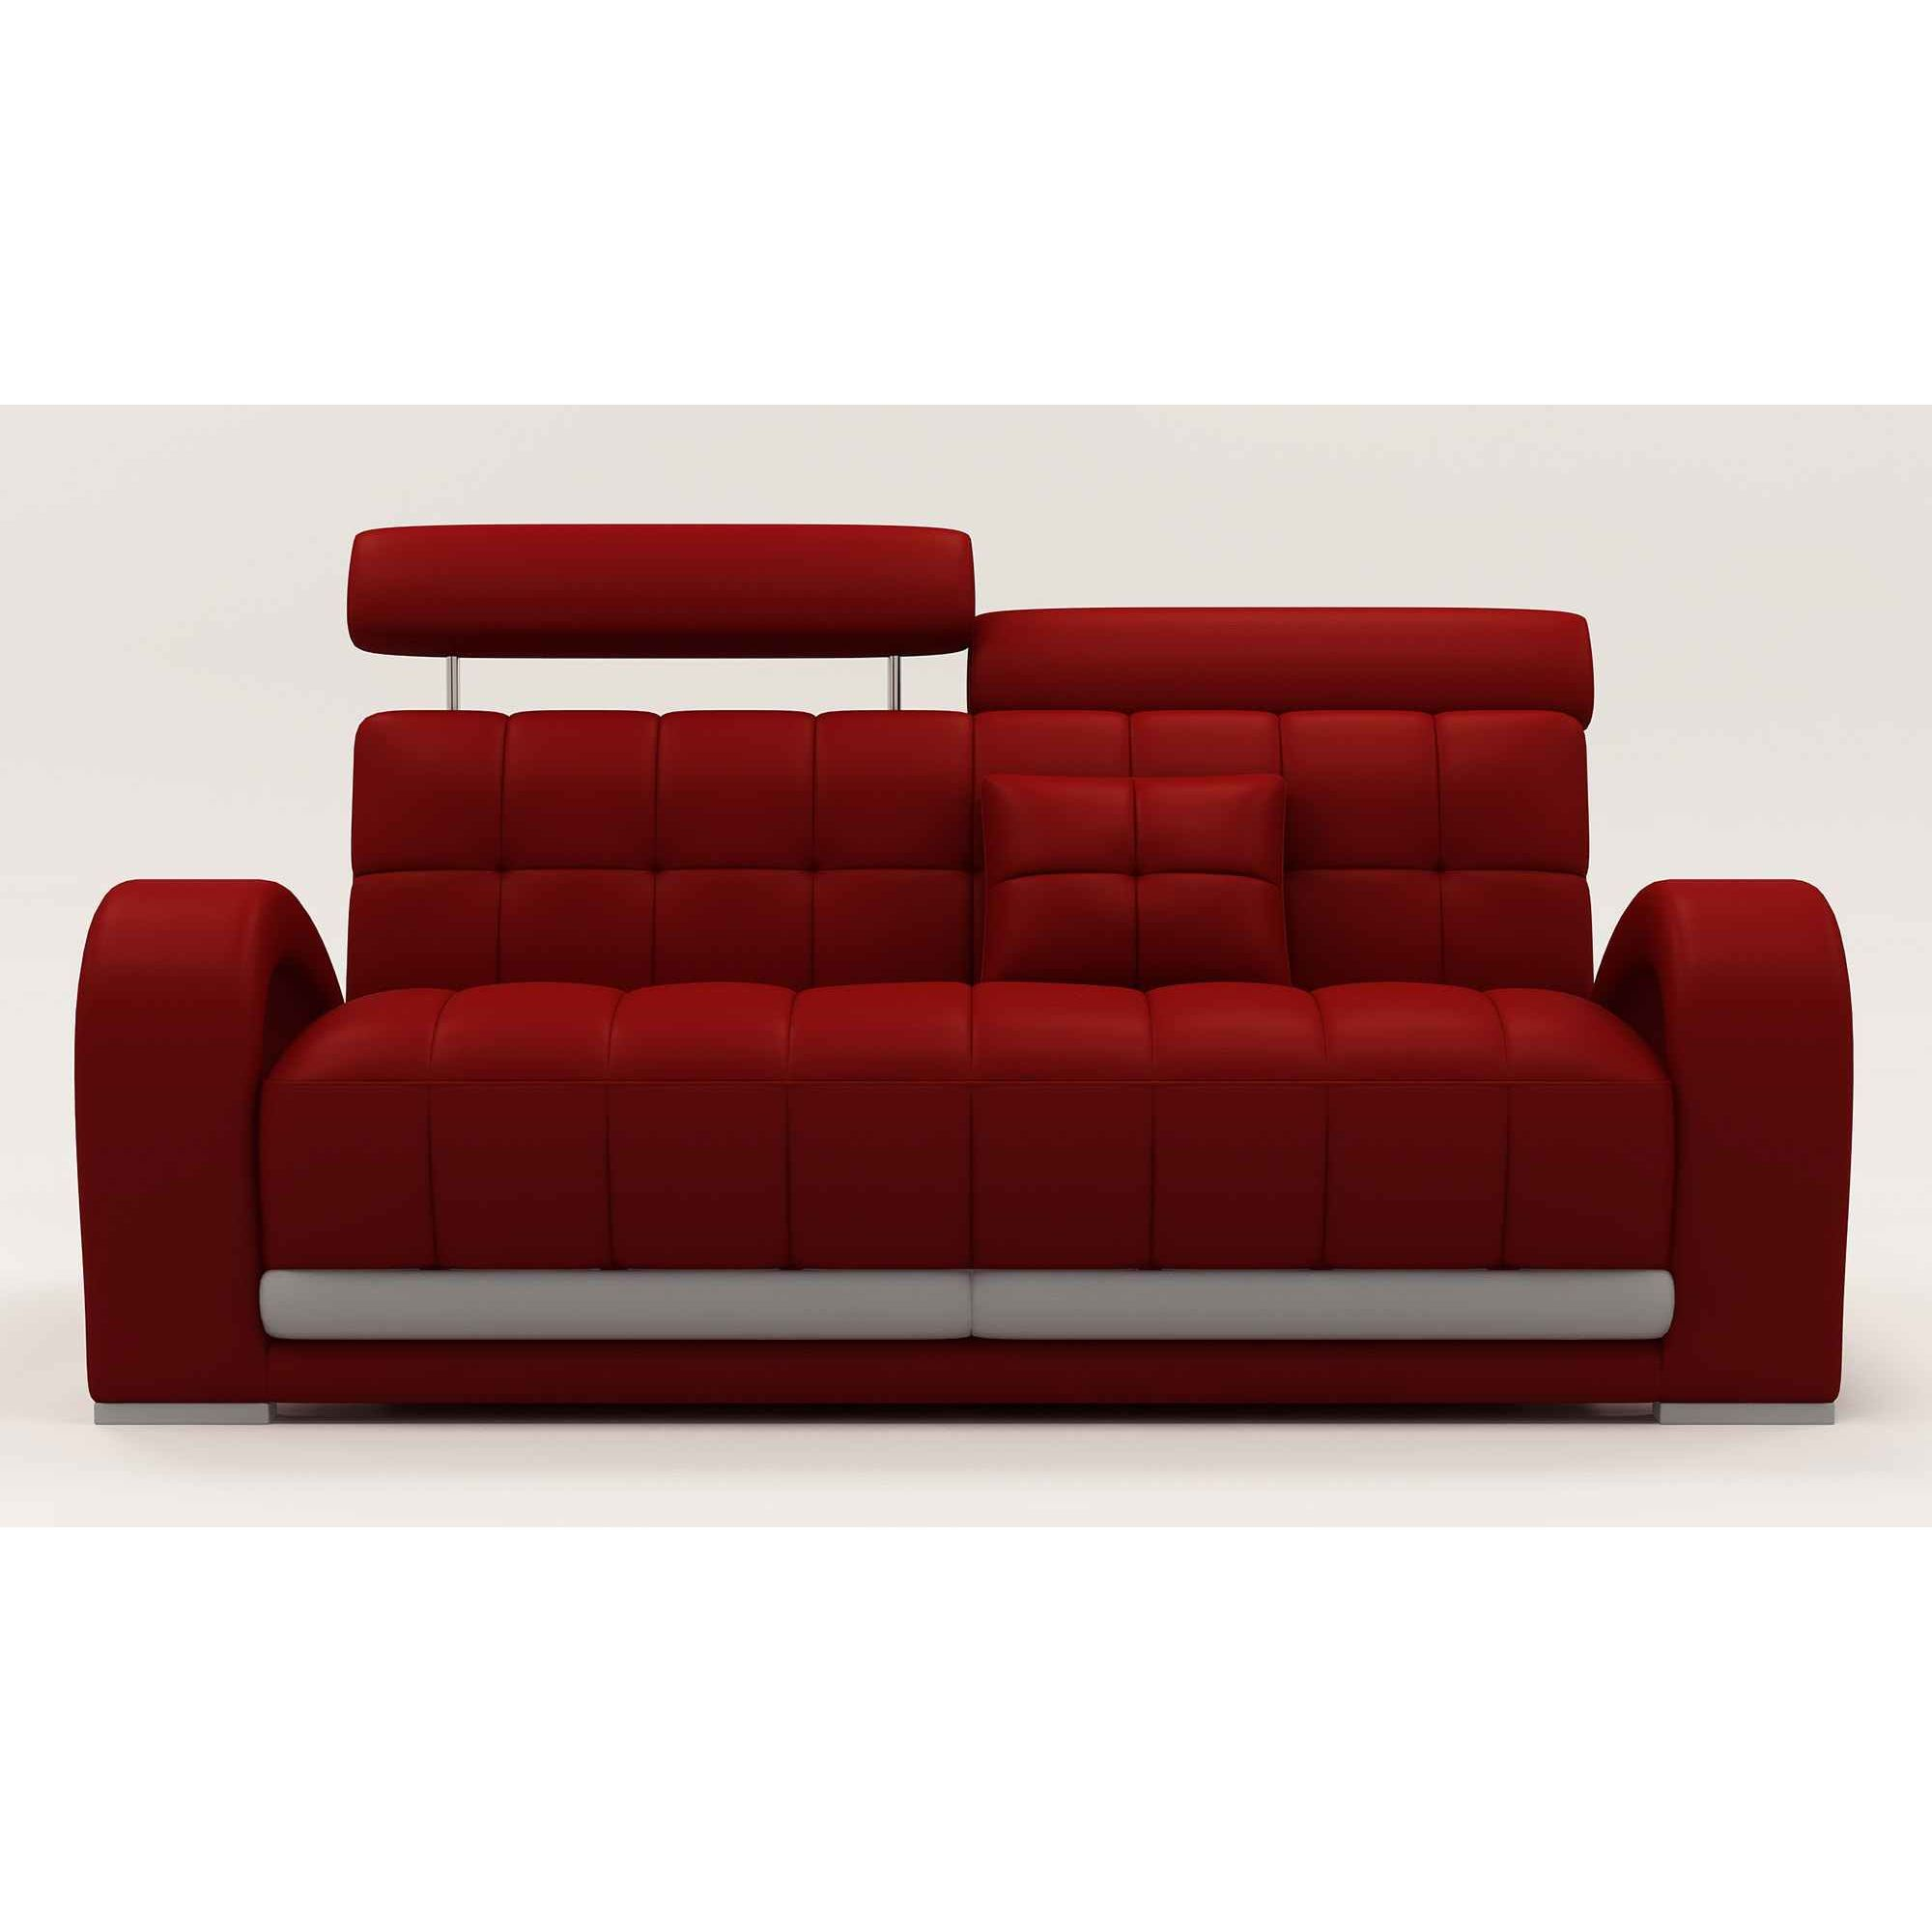 Deco in paris canape cuir rouge 3 places verdi can verdi 3p pu rouge - Dimensions canape 3 places ...